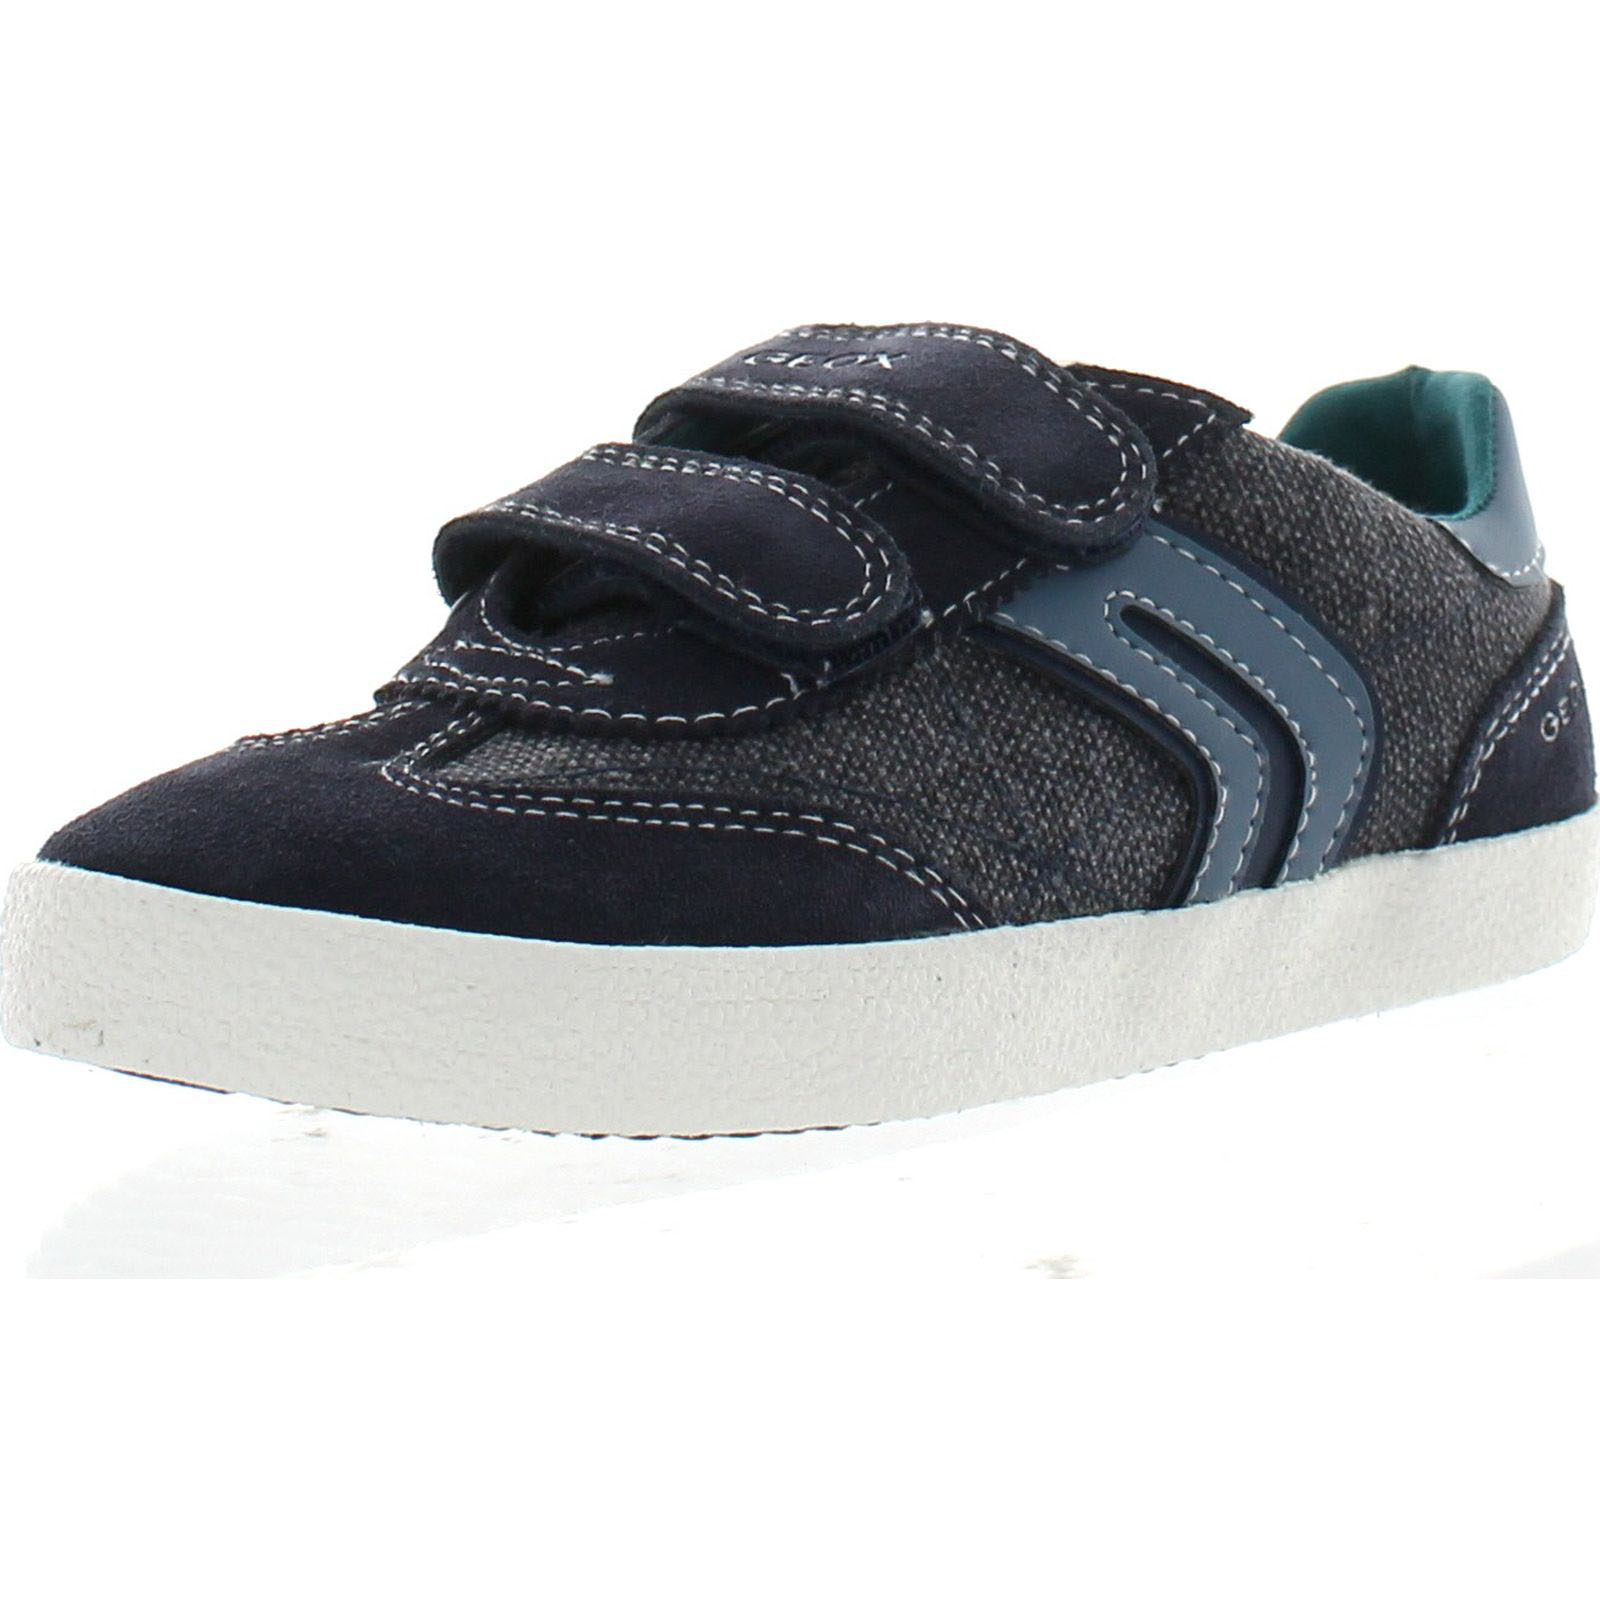 new high quality shoes for cheap affordable price Geox Boys Jr Kiwi Boy Casual Sneakers 727973735356 | eBay